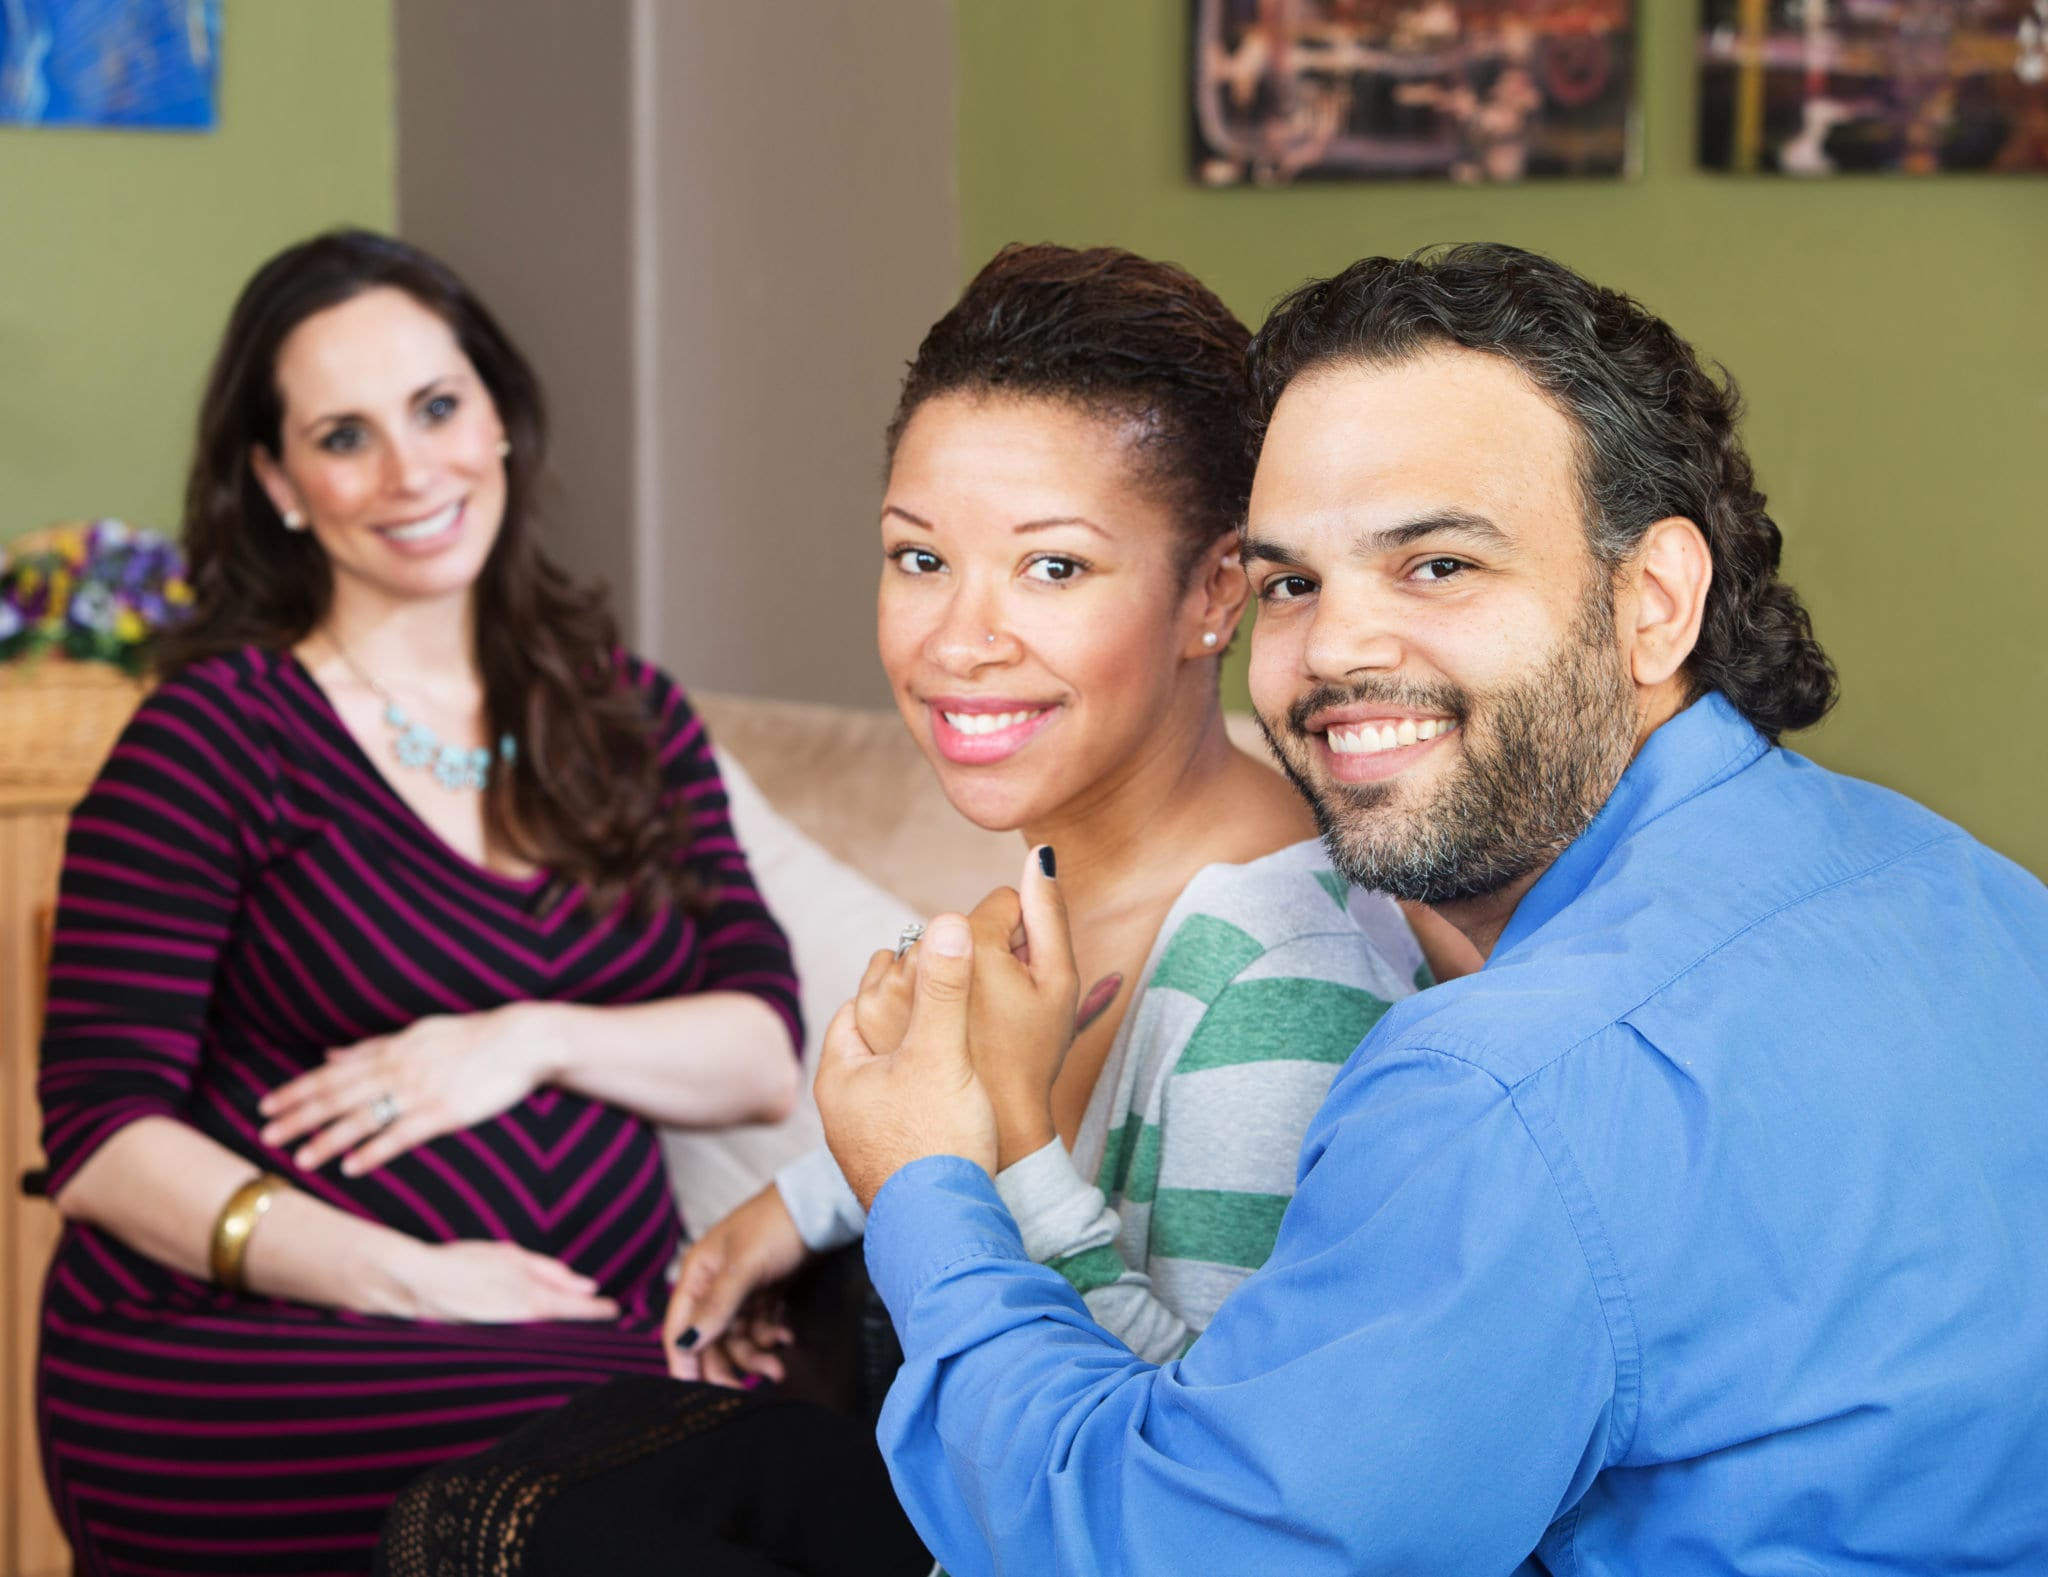 Smiling Hispanic couple sitting with beautiful surrogate mother for IVF